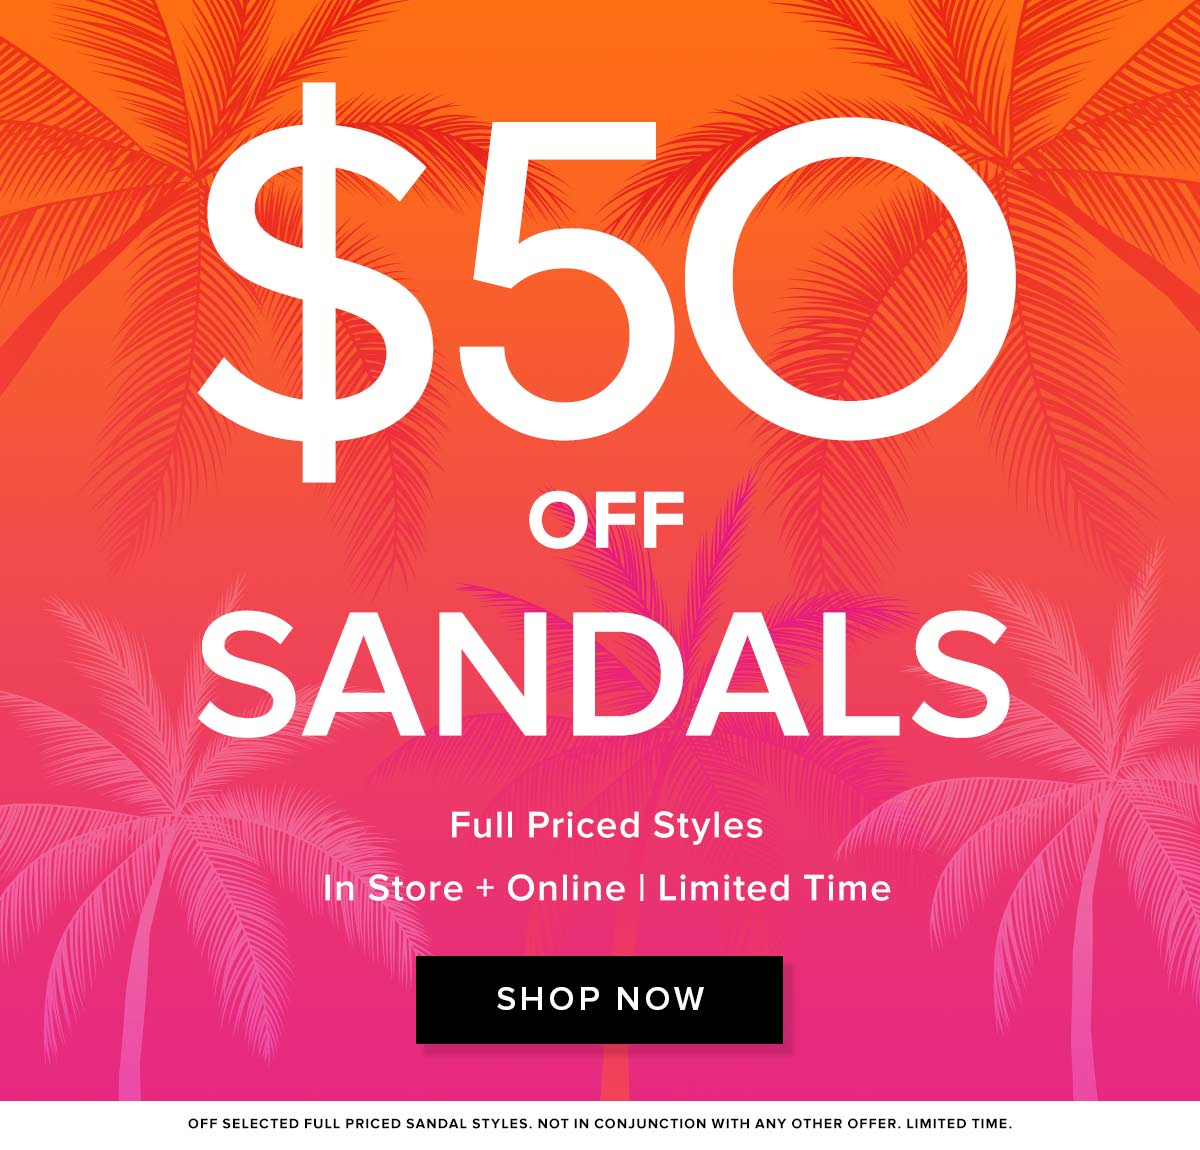 $50 Off Sandals